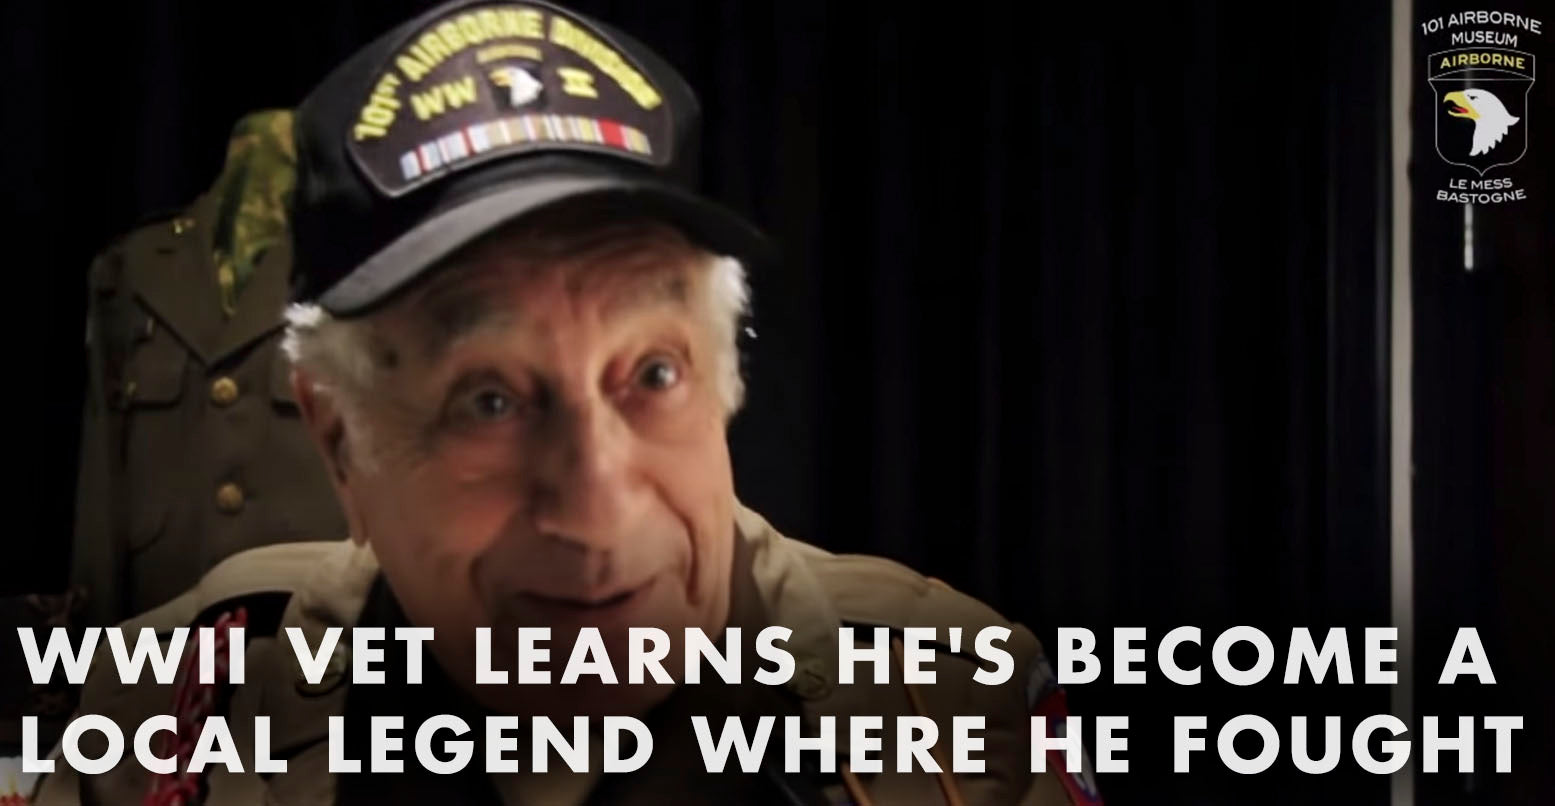 VIDEO: WWII Vet Learns He's A Local Legend In The Town Where He Fought